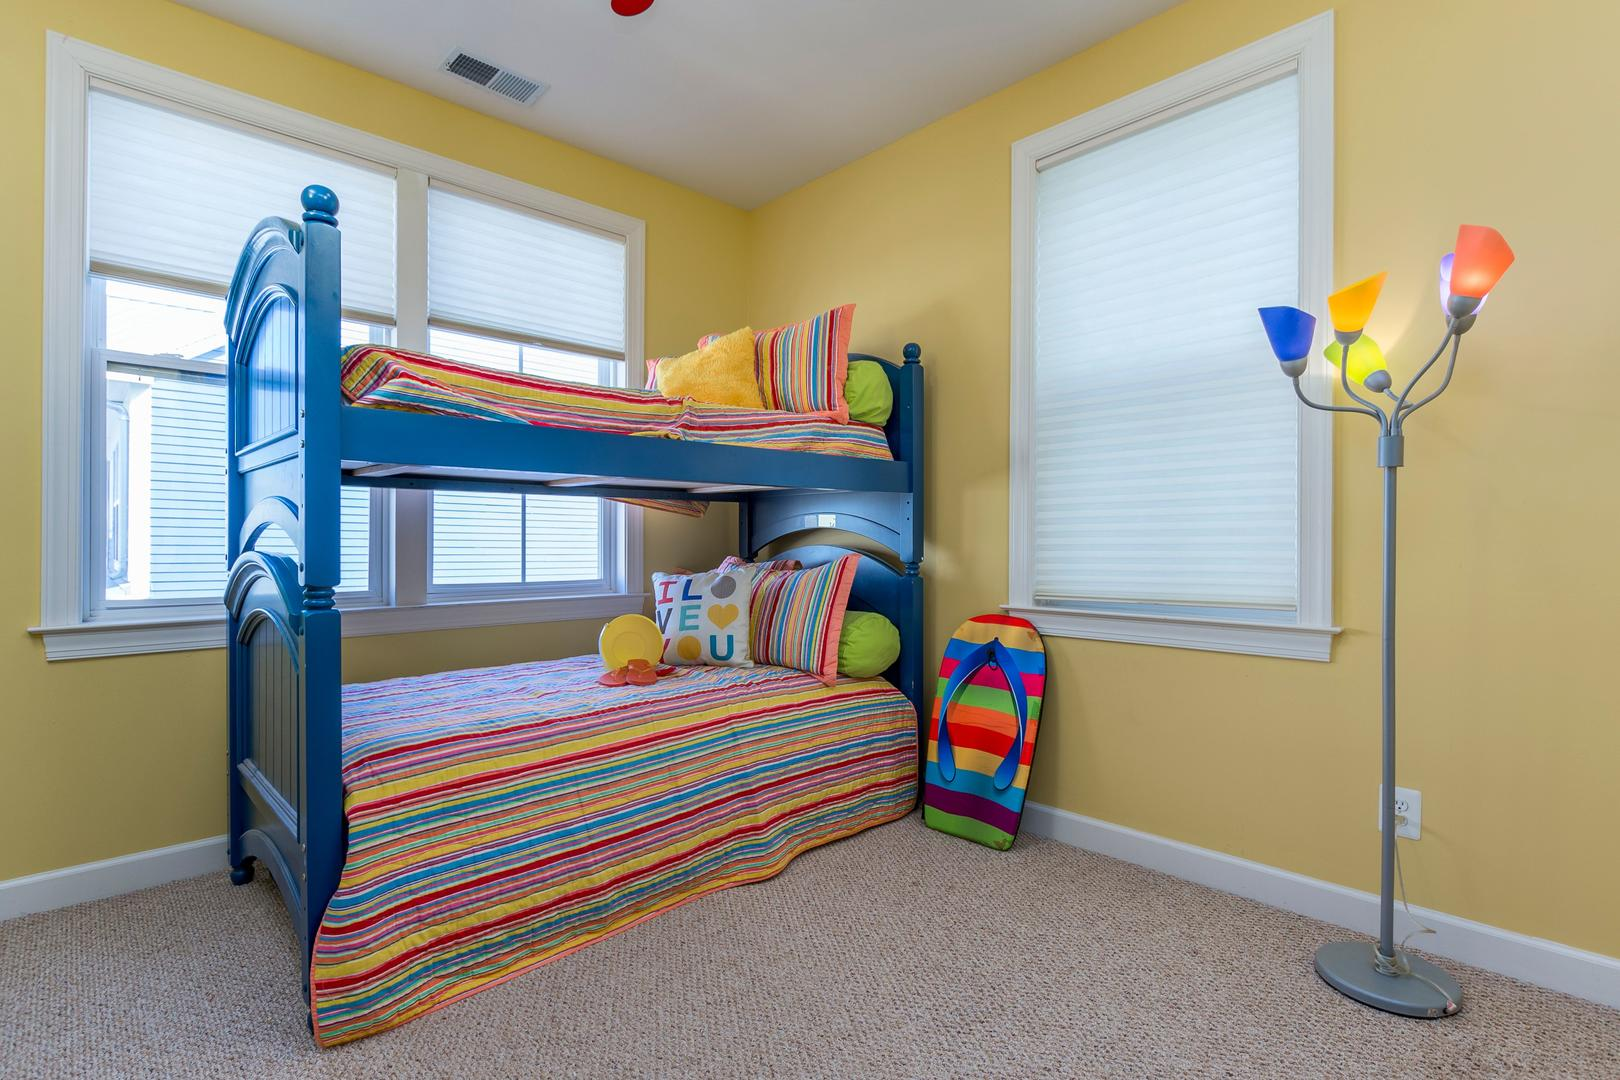 Sunset Island 12 Shore Point Dr. - 3rd Floor Bedroom with Bunk Bed and Trundle